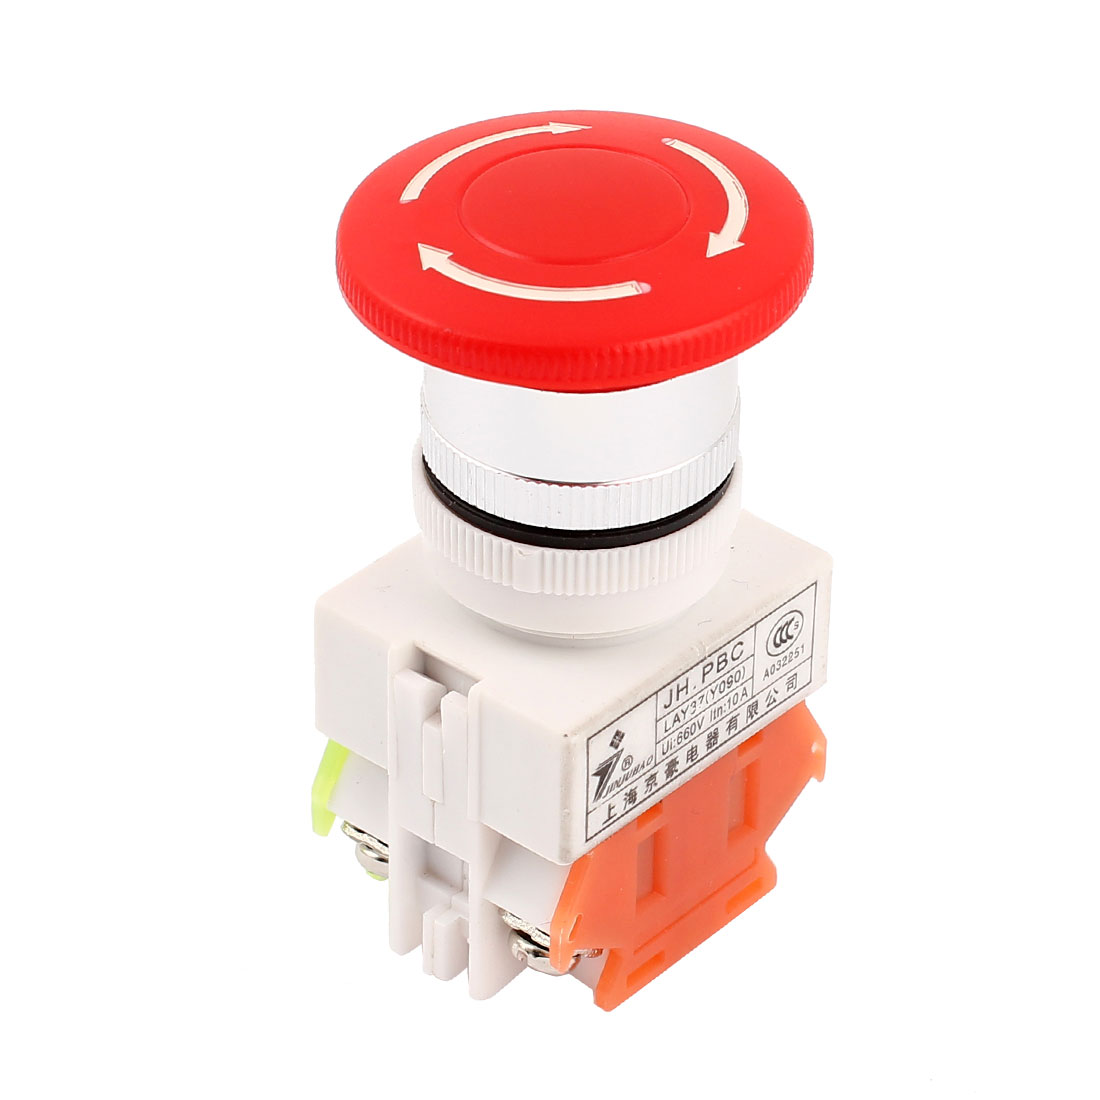 Emergency Stop 40mm Red Mushroom Push Button Switch 660V 10A